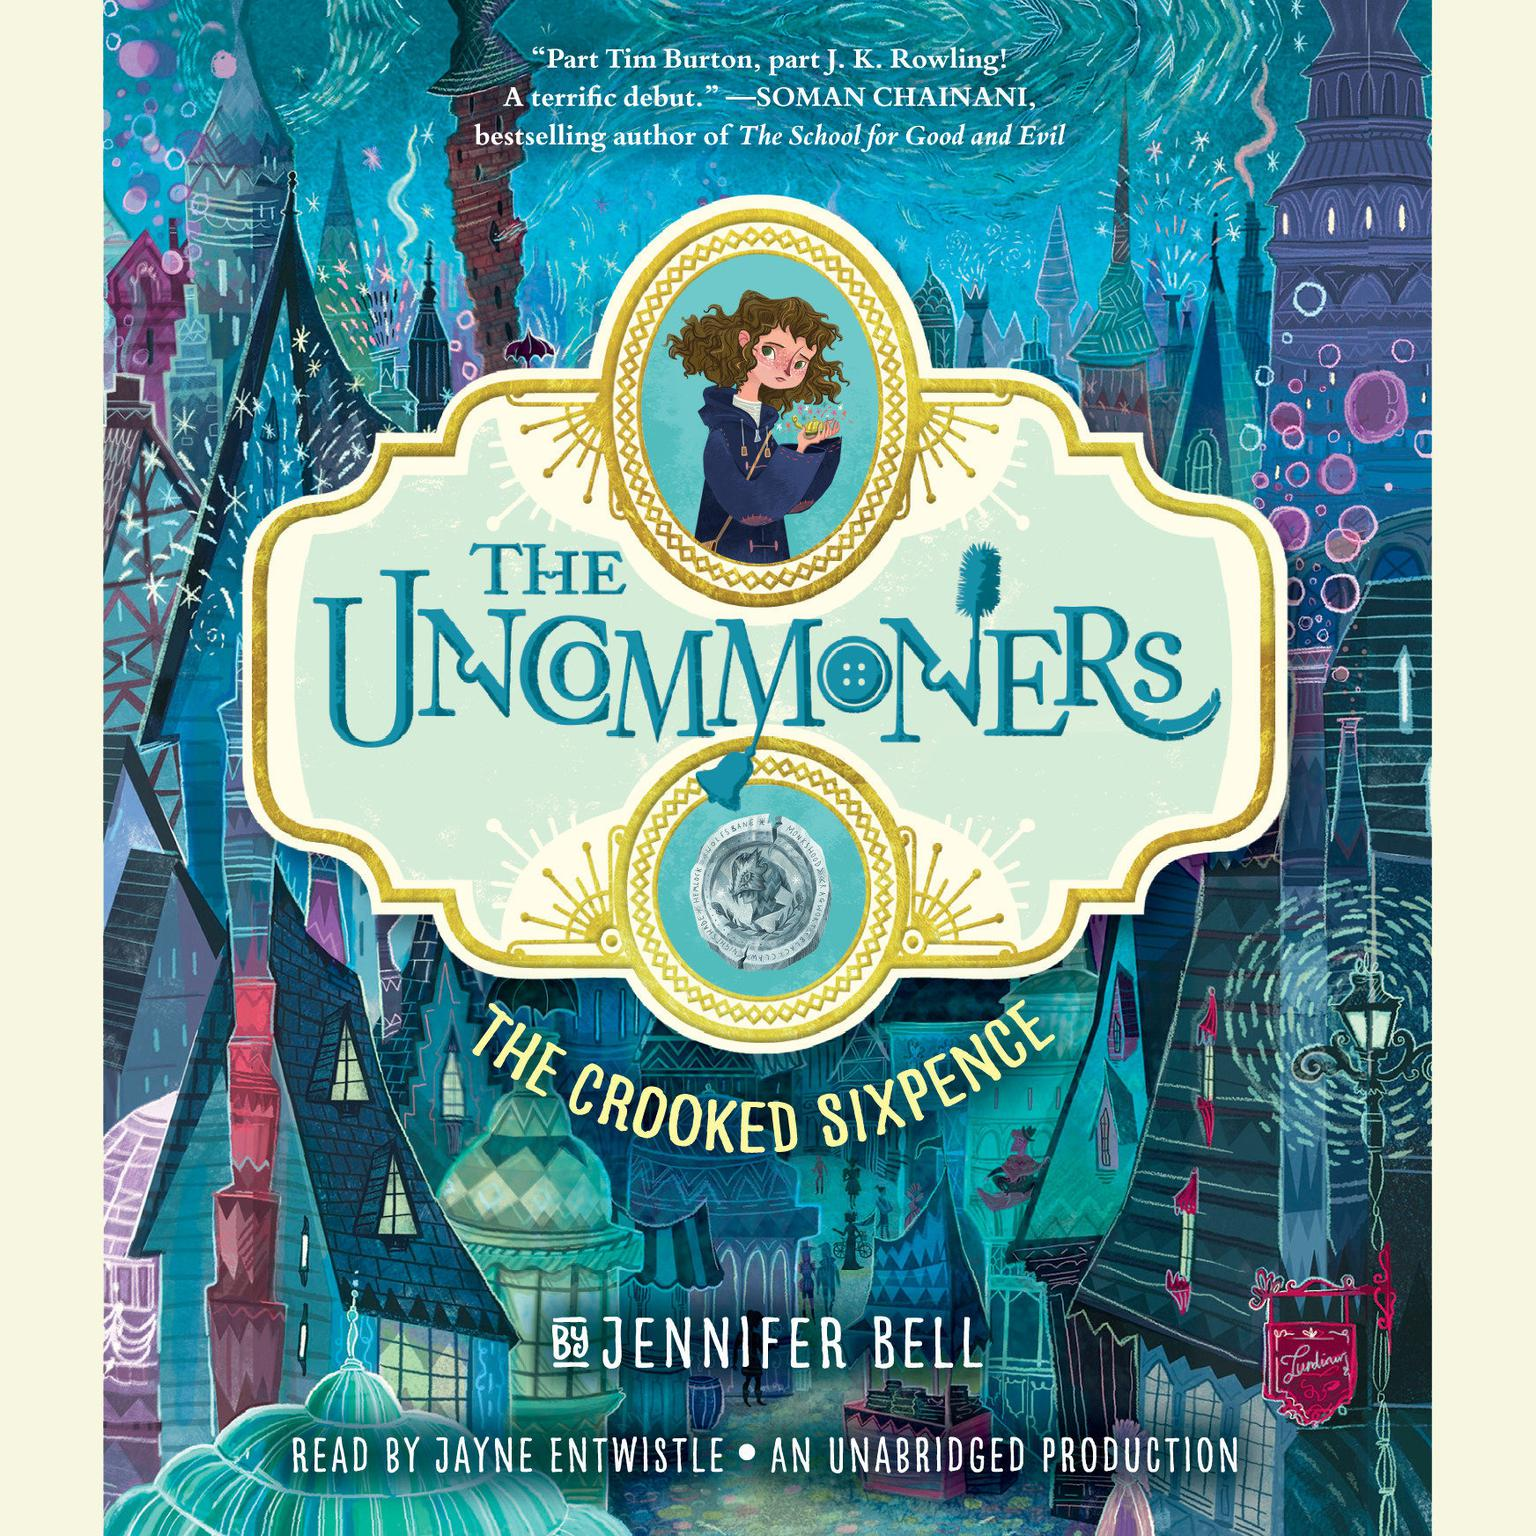 Printable The Uncommoners #1: The Crooked Sixpence Audiobook Cover Art